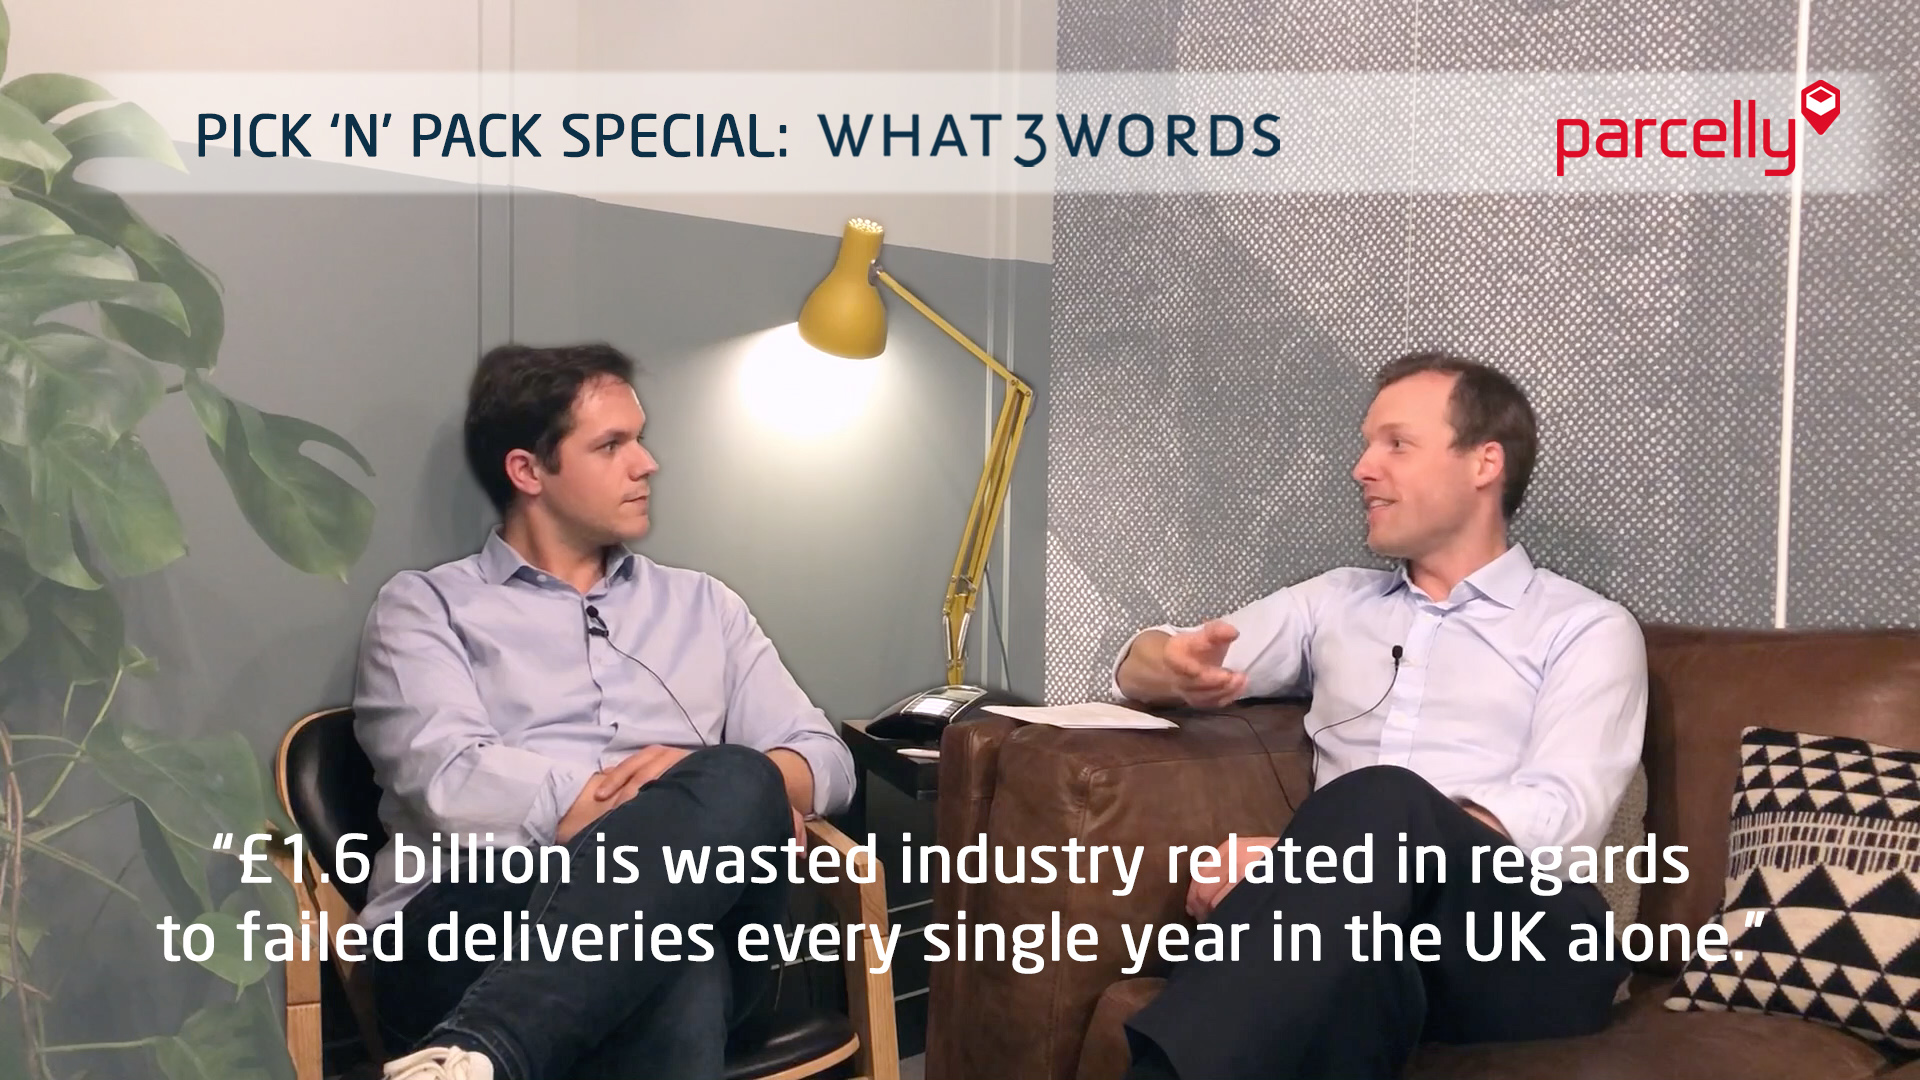 Parcelly Pick n Pack 4 Special what3words thumbnail 08.11.2018